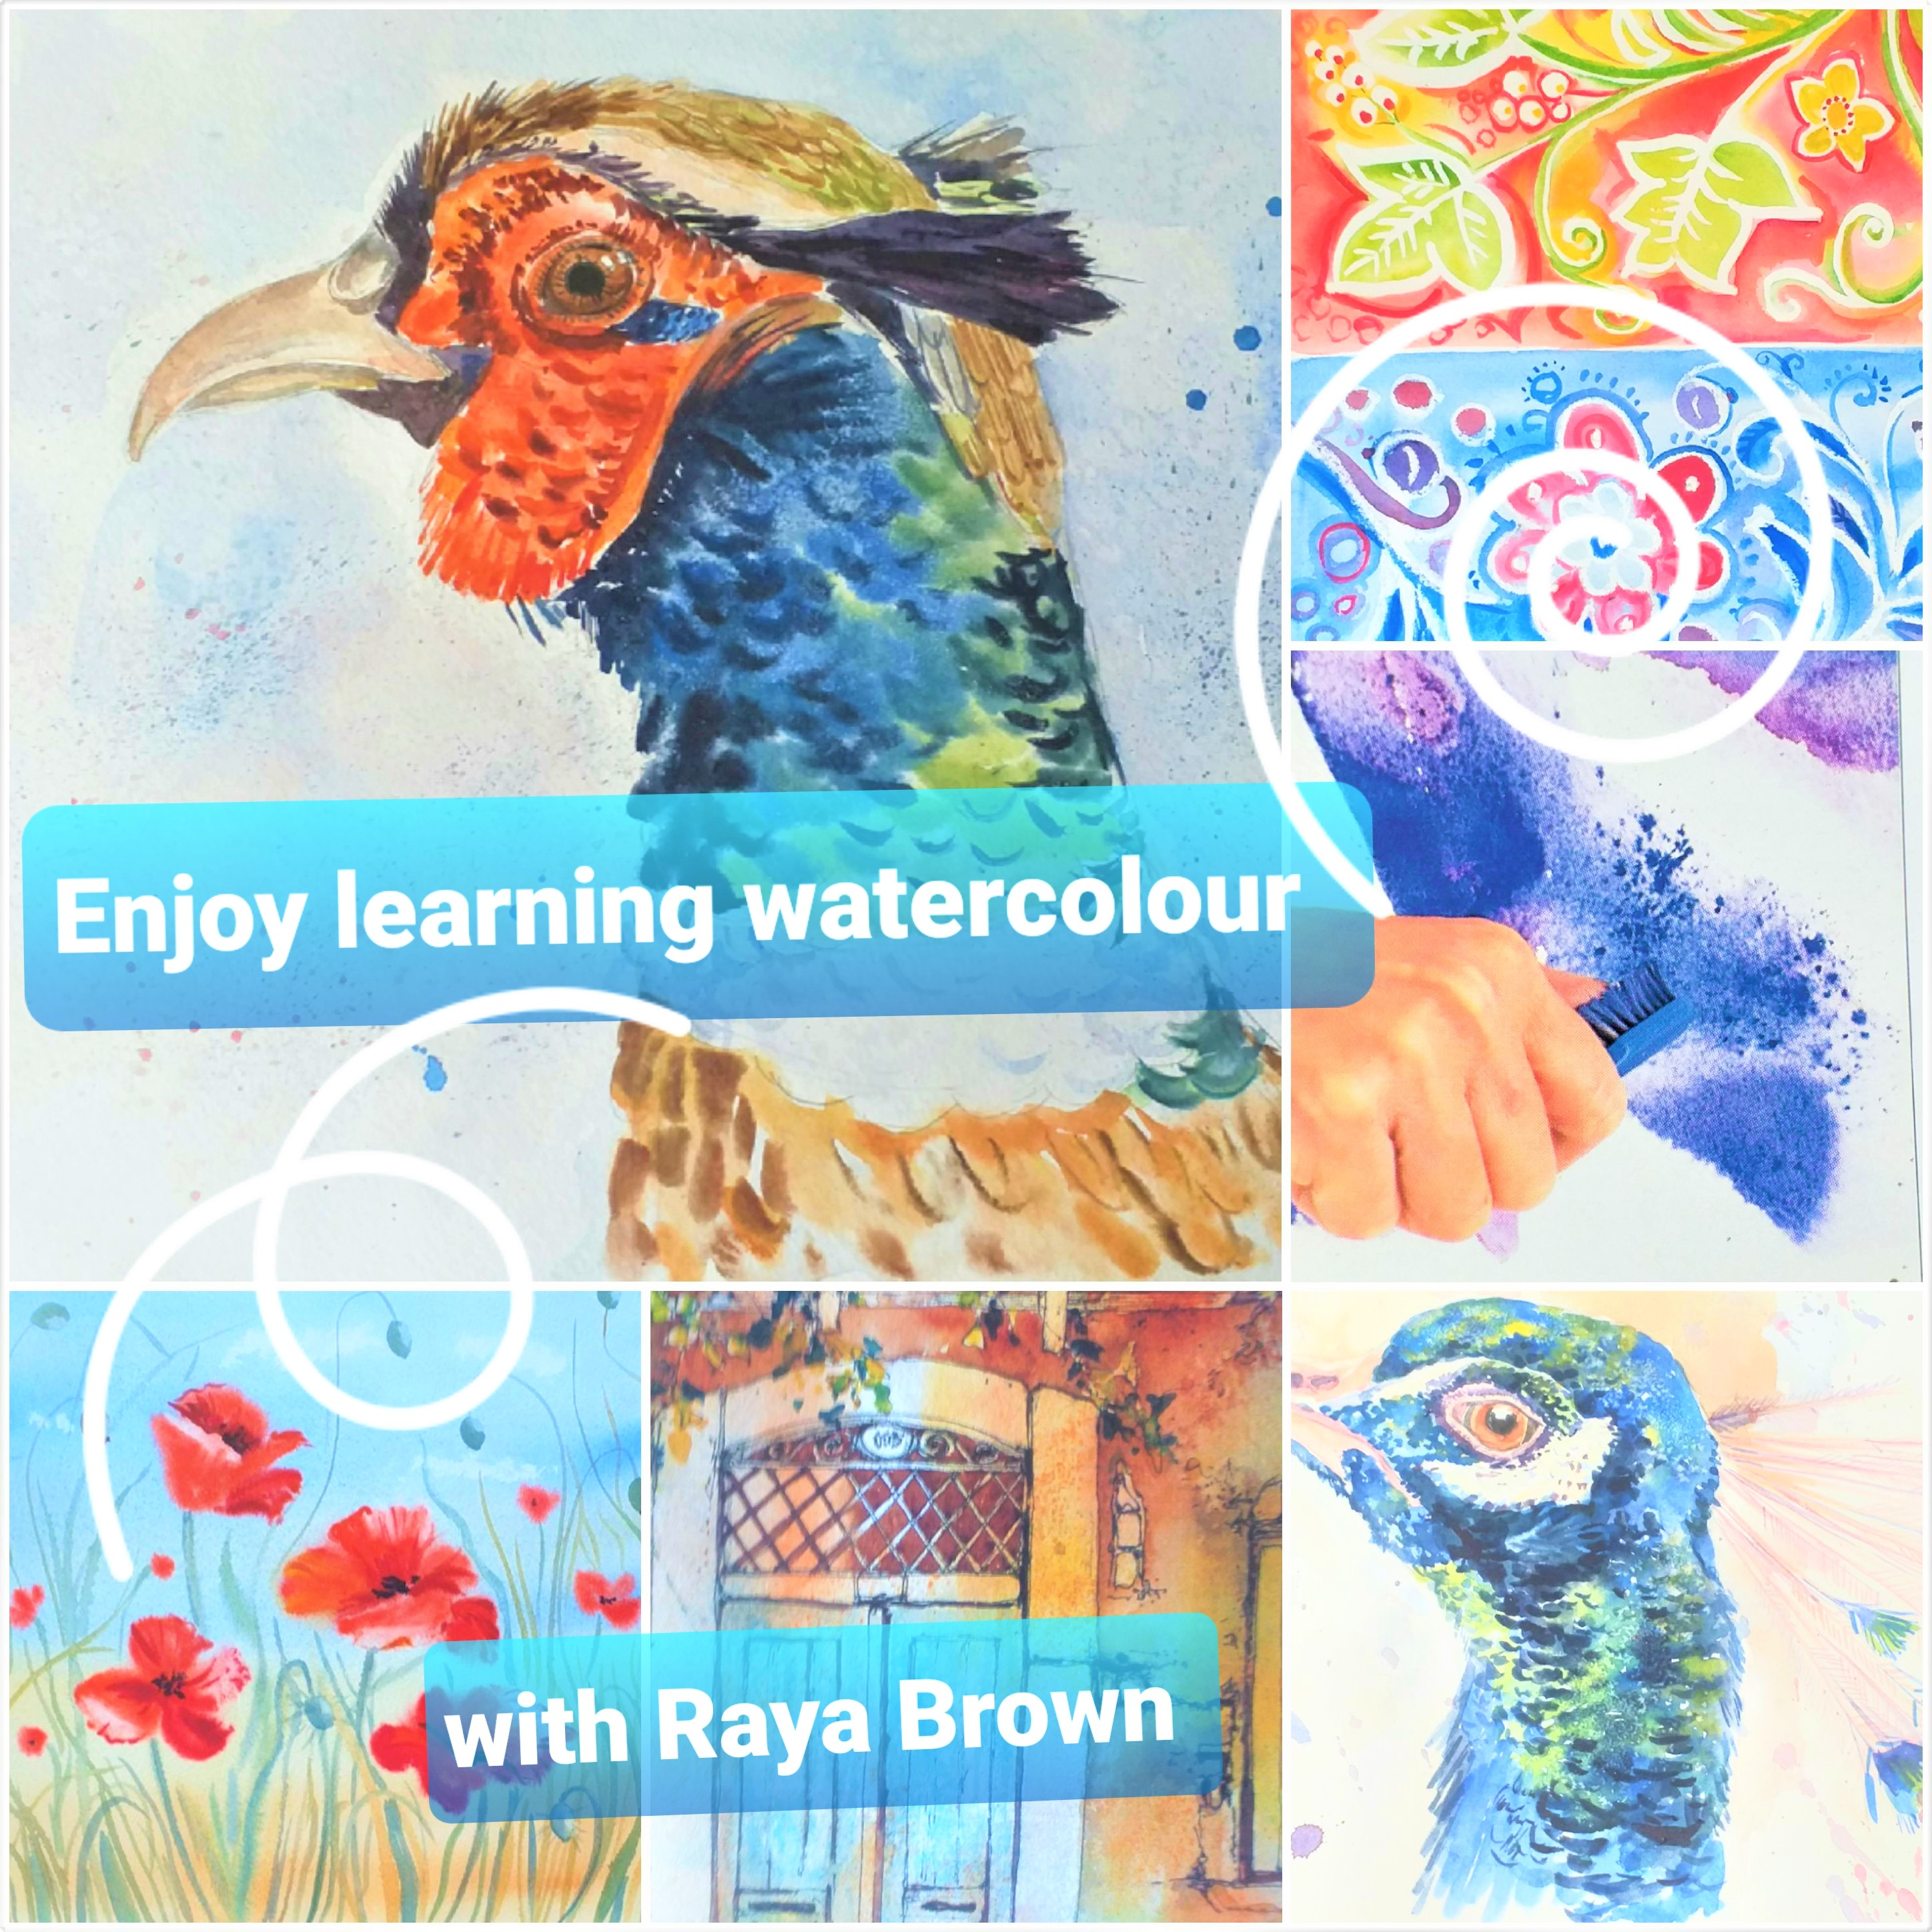 'Fun with watercolour' interactive online course with artist Raya Brown